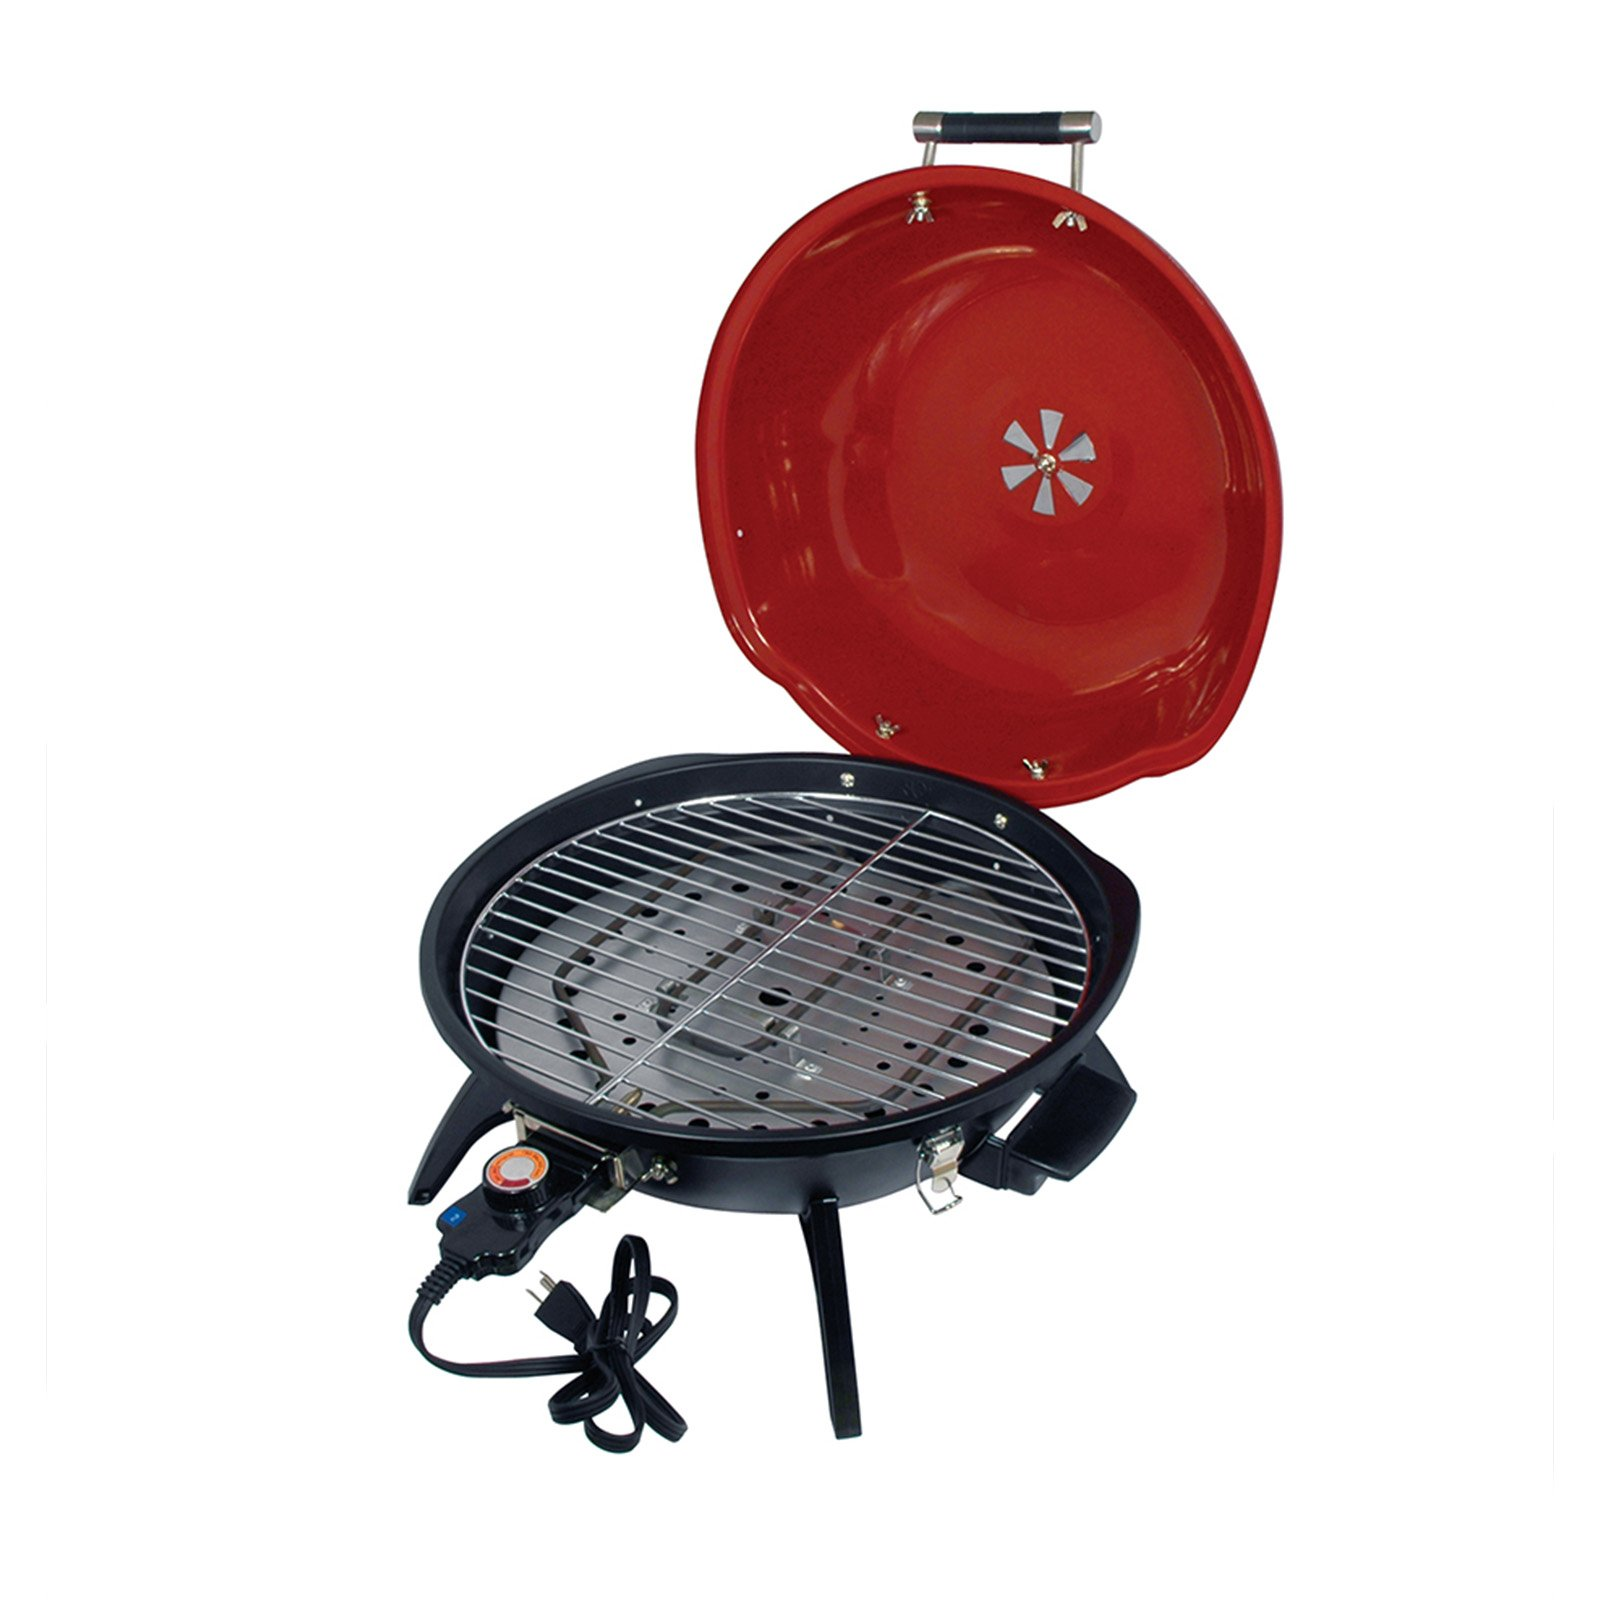 Better Chef Portable Electric Tabletop Outdoor Barbeque Grill Griddle by Better Chef (Image #1)